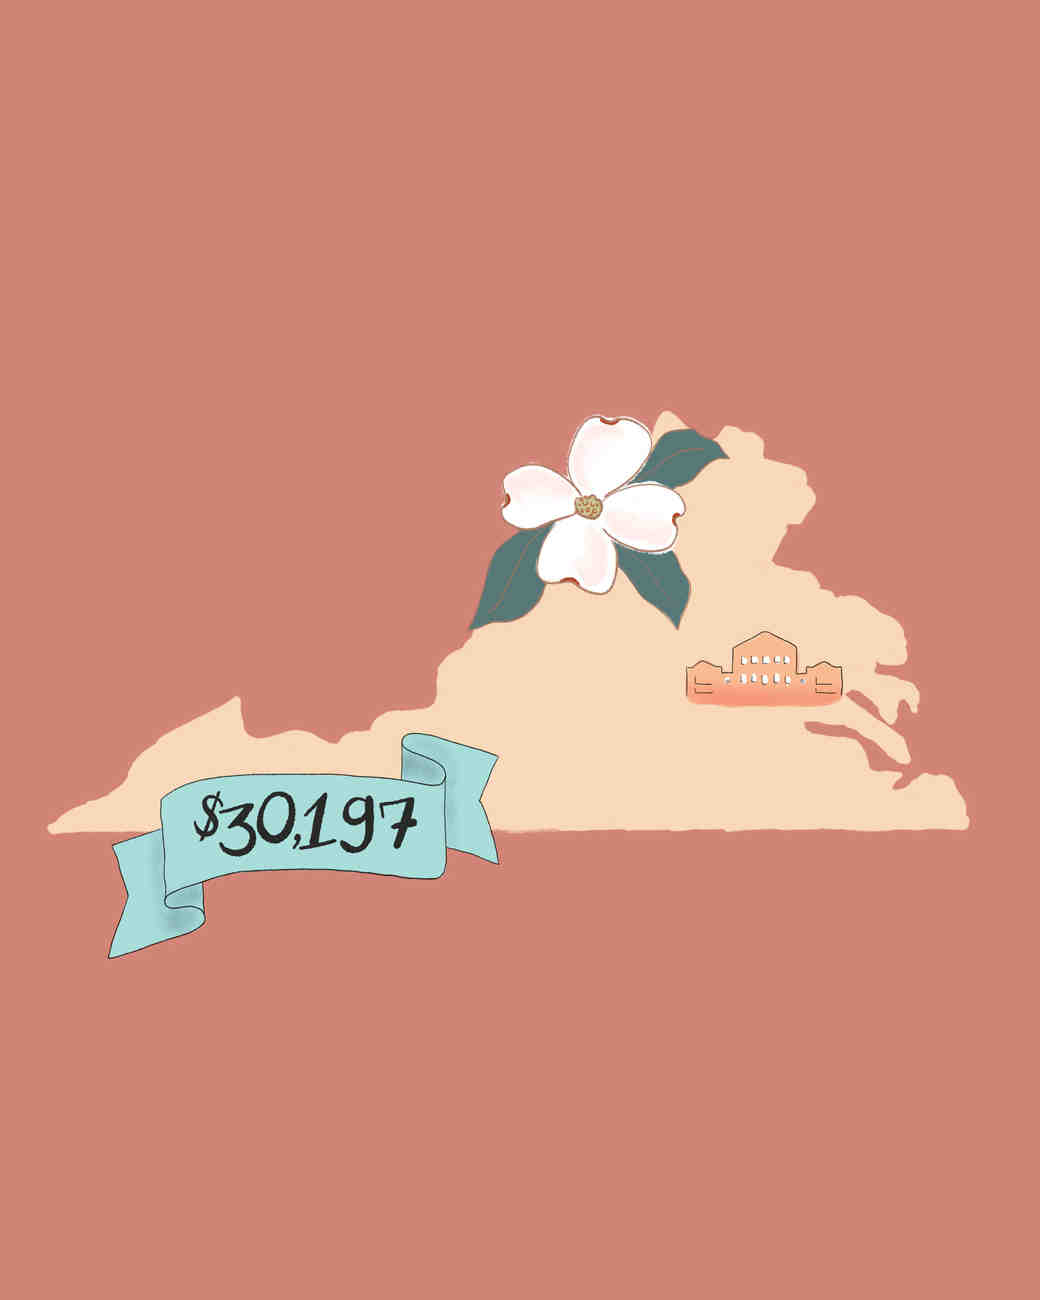 state wedding costs illustration virginia